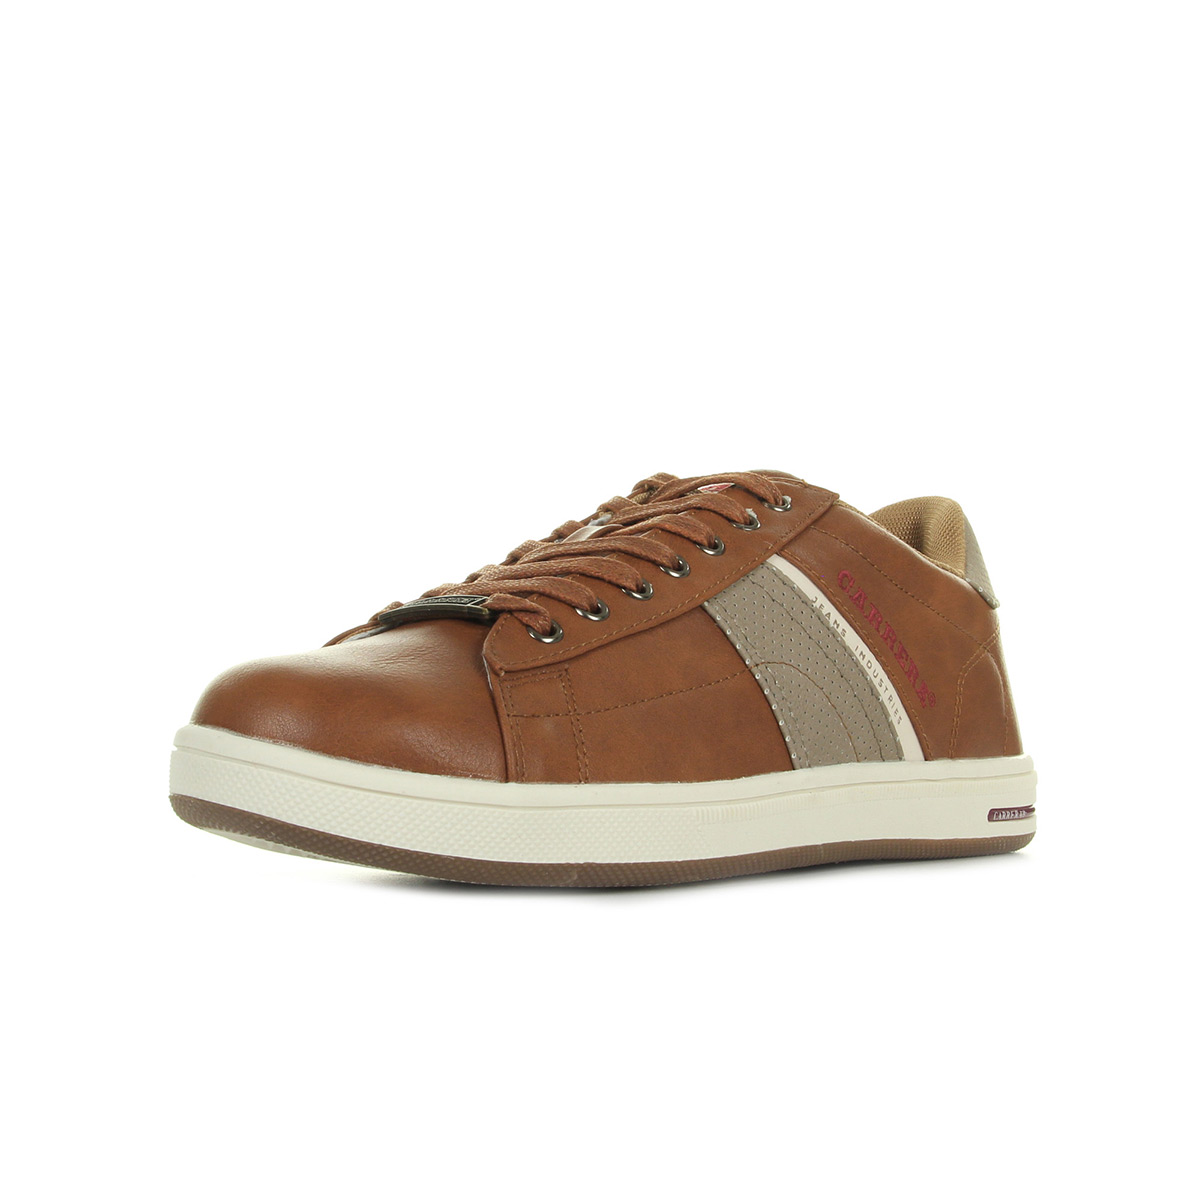 a357b1c3023 Chaussures Baskets Carrera Jeans homme Play Lth Cudio taille Marron ...